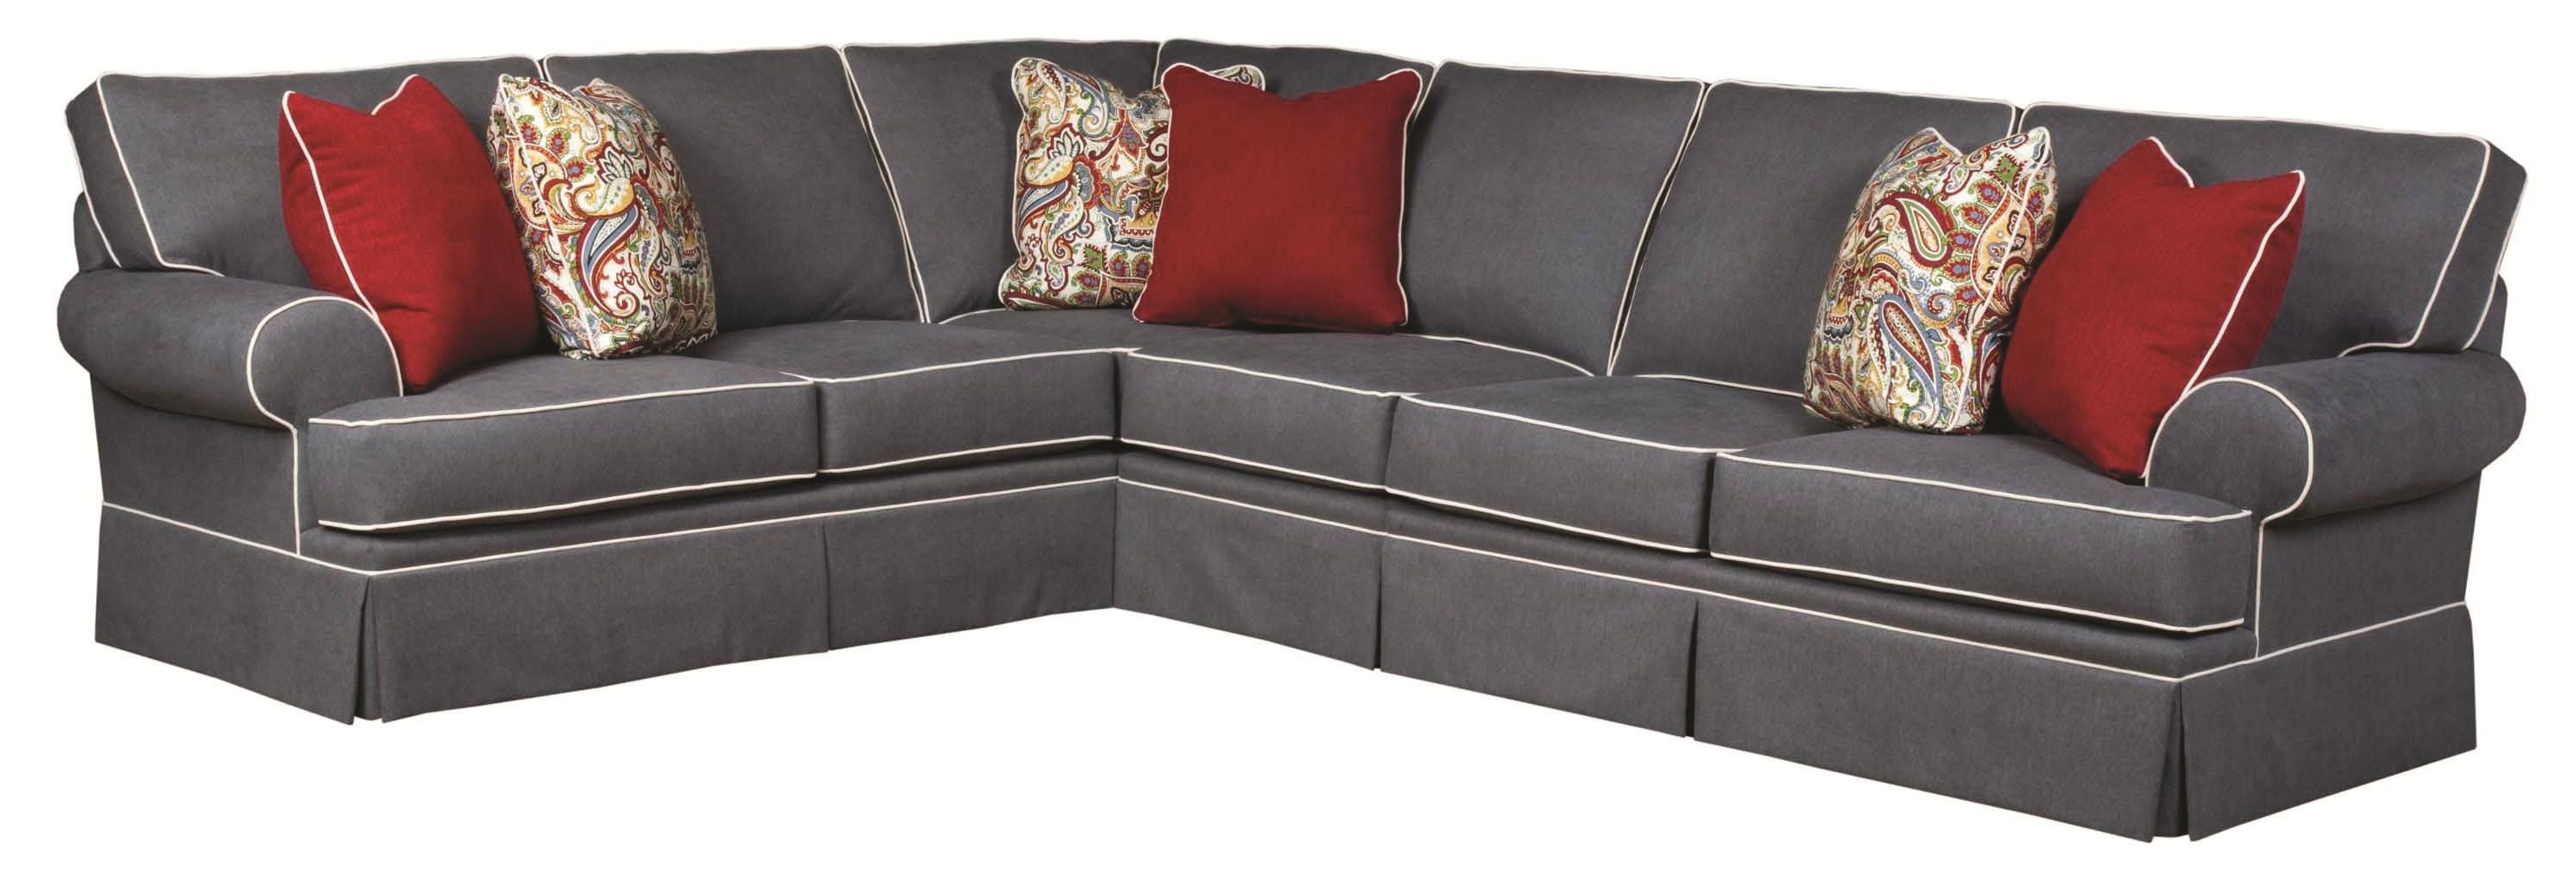 Sam Levitz Sectional Sofas Within Current Broyhill Furniture Emily Traditional 3 Piece Sectional Sofa With (View 17 of 20)